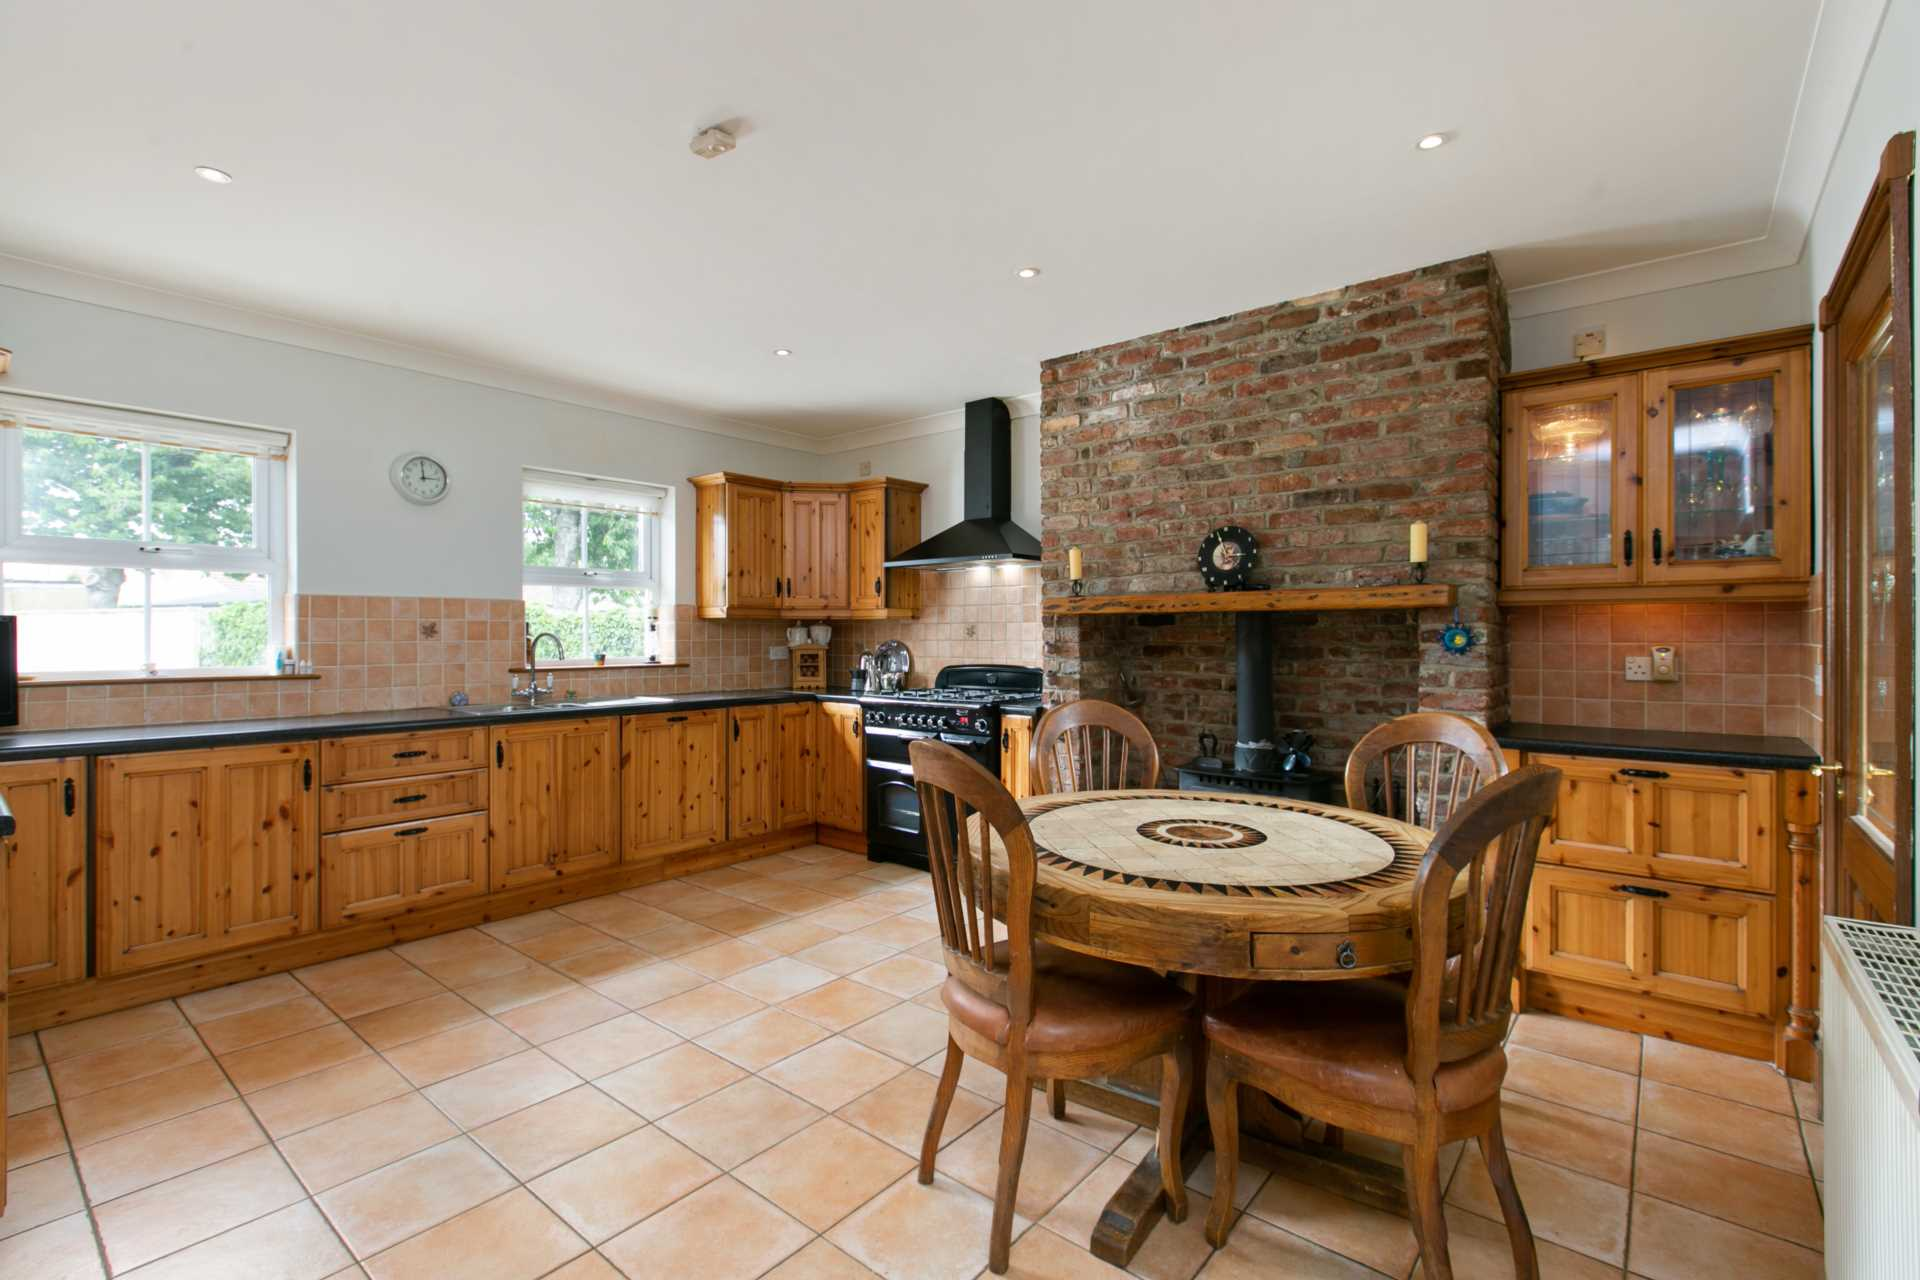 20a Old Court Cottages, Ballycullen, Dublin 24, Image 5